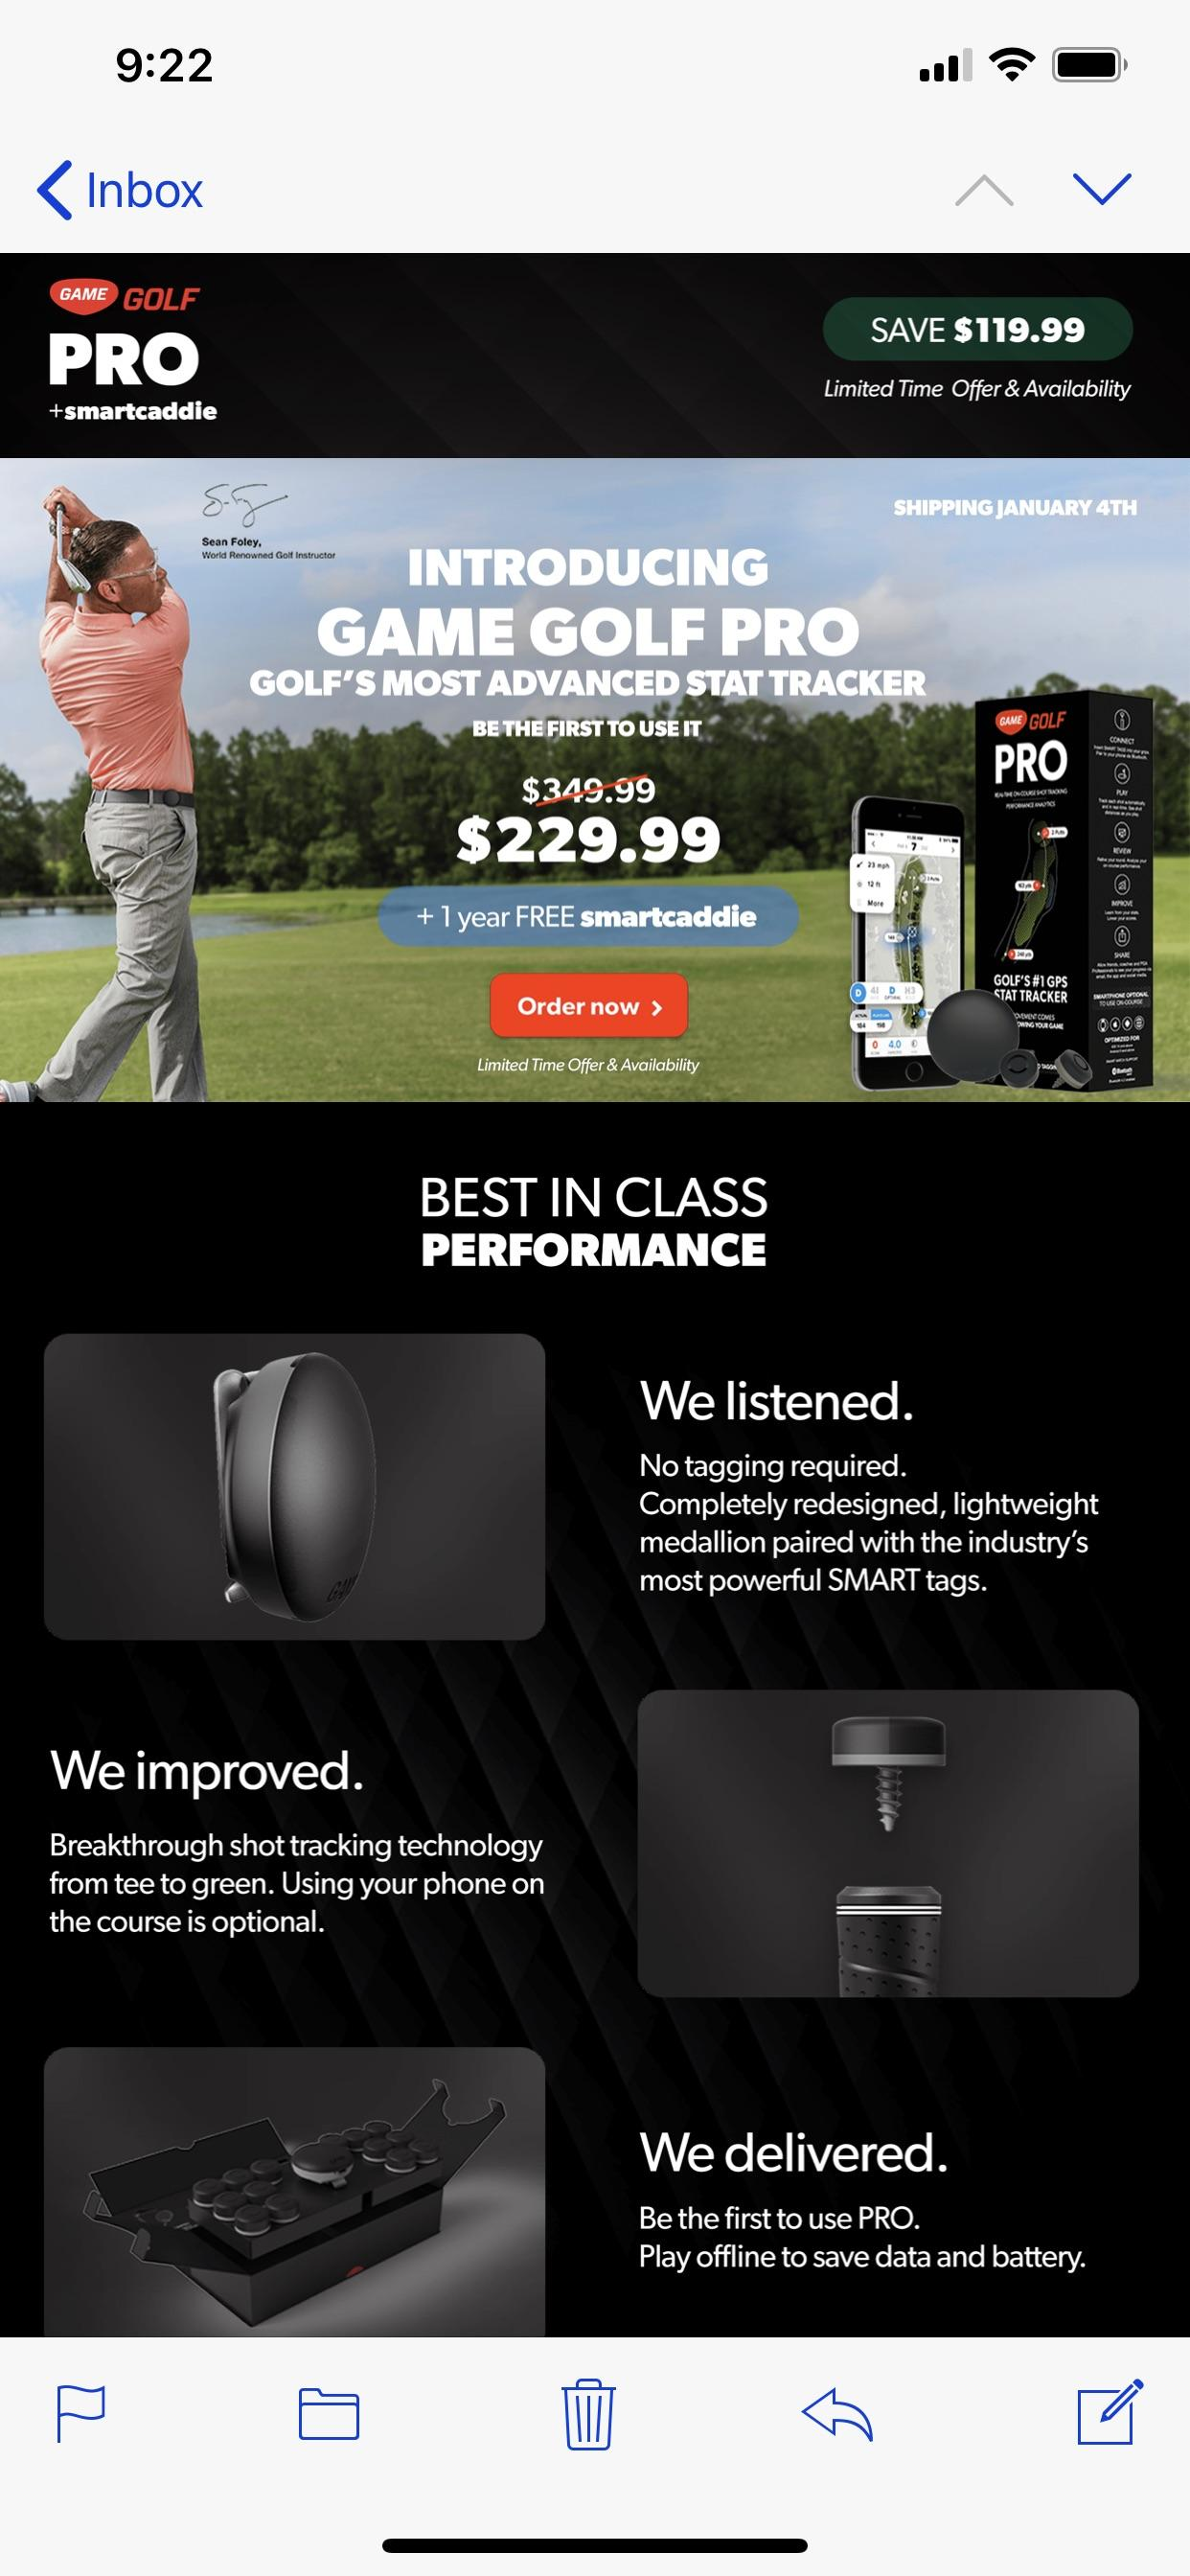 Game Golf Pro finally gives update. Available January 4th ...